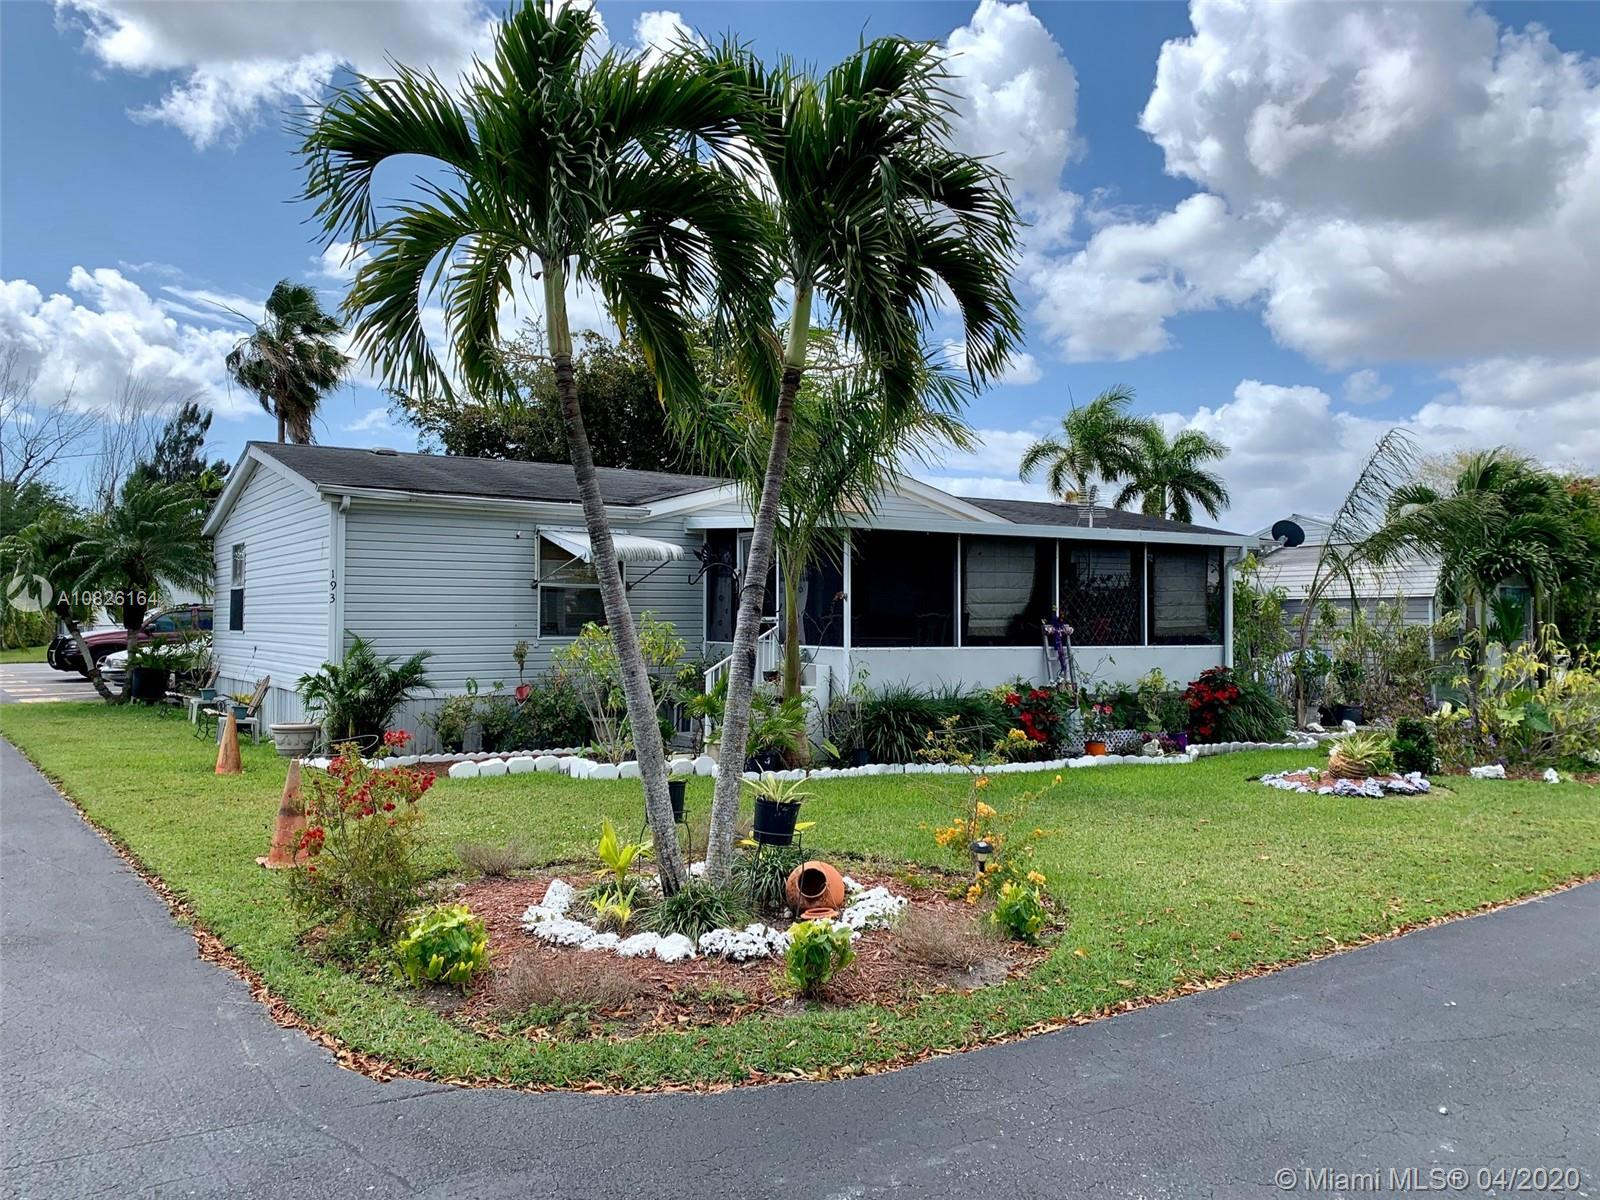 35250 SW 177 CT - UNIT 193, Homestead, FL 33034 - Homestead, FL real estate listing